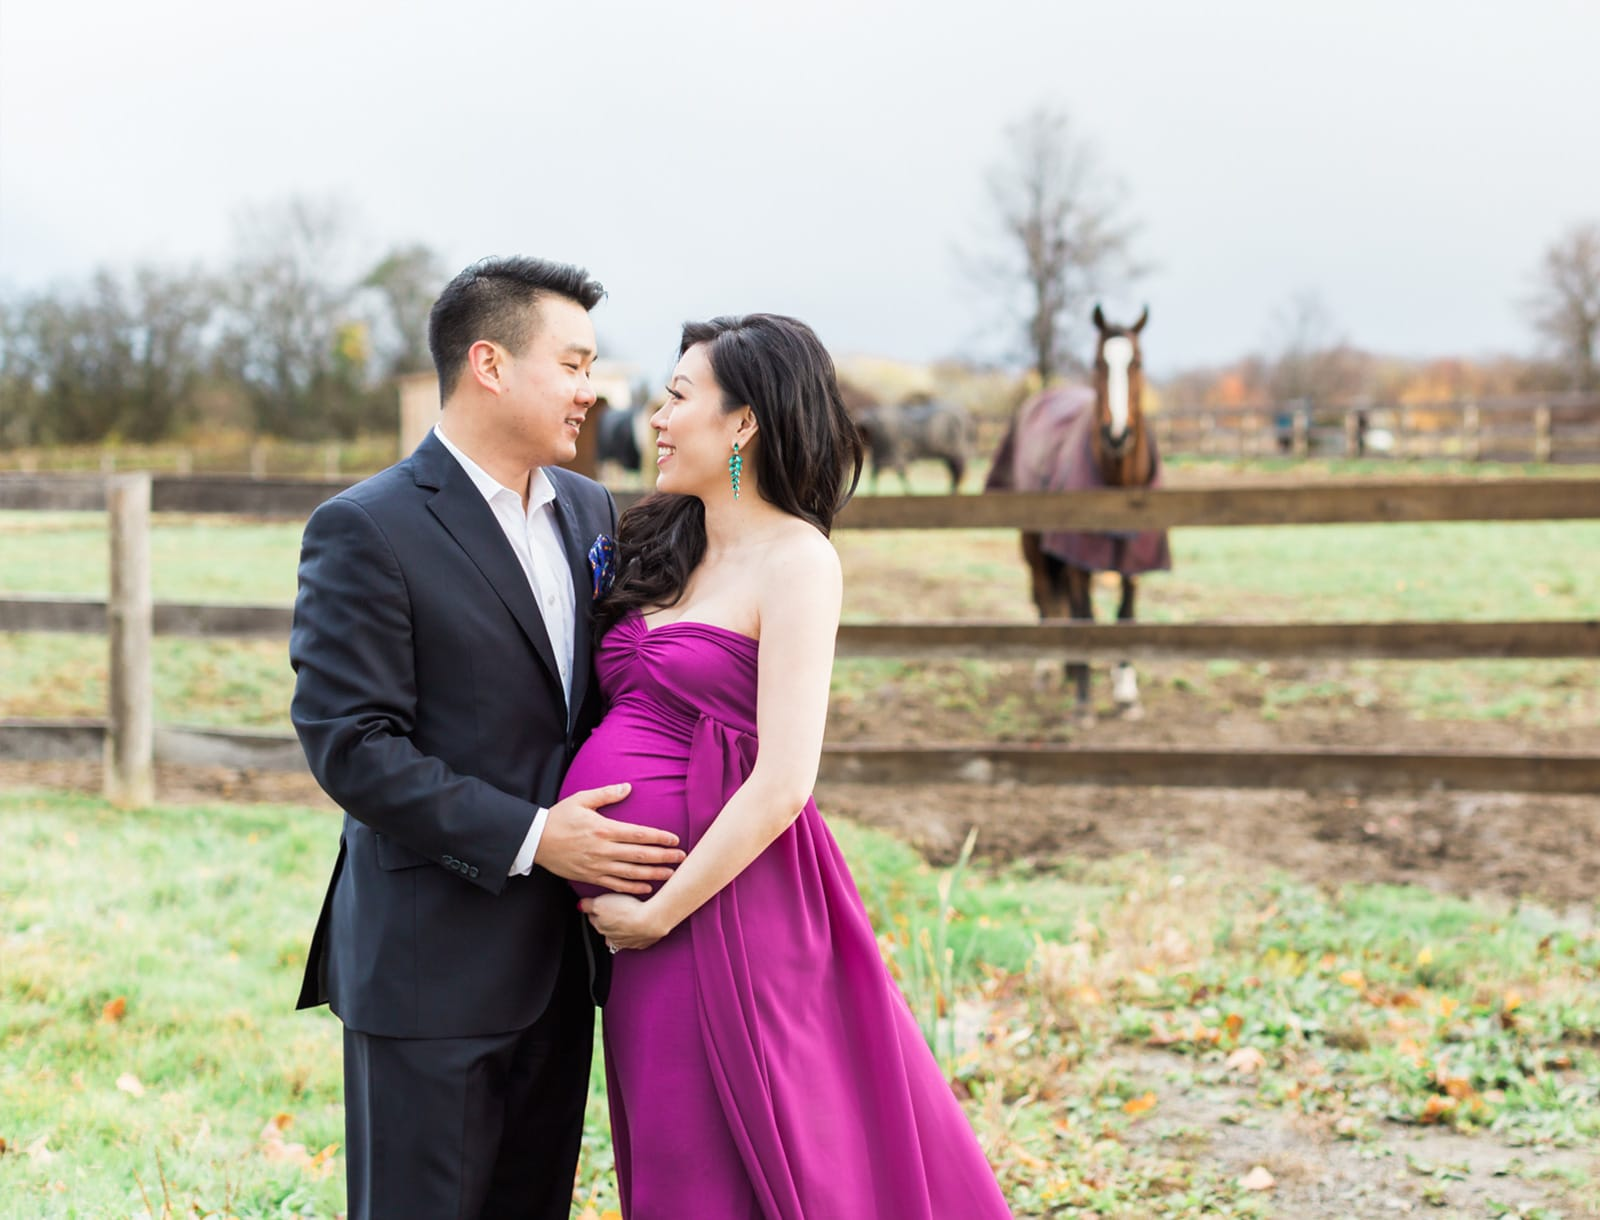 Romantic Fall Maternity Session: Chermain + Alex